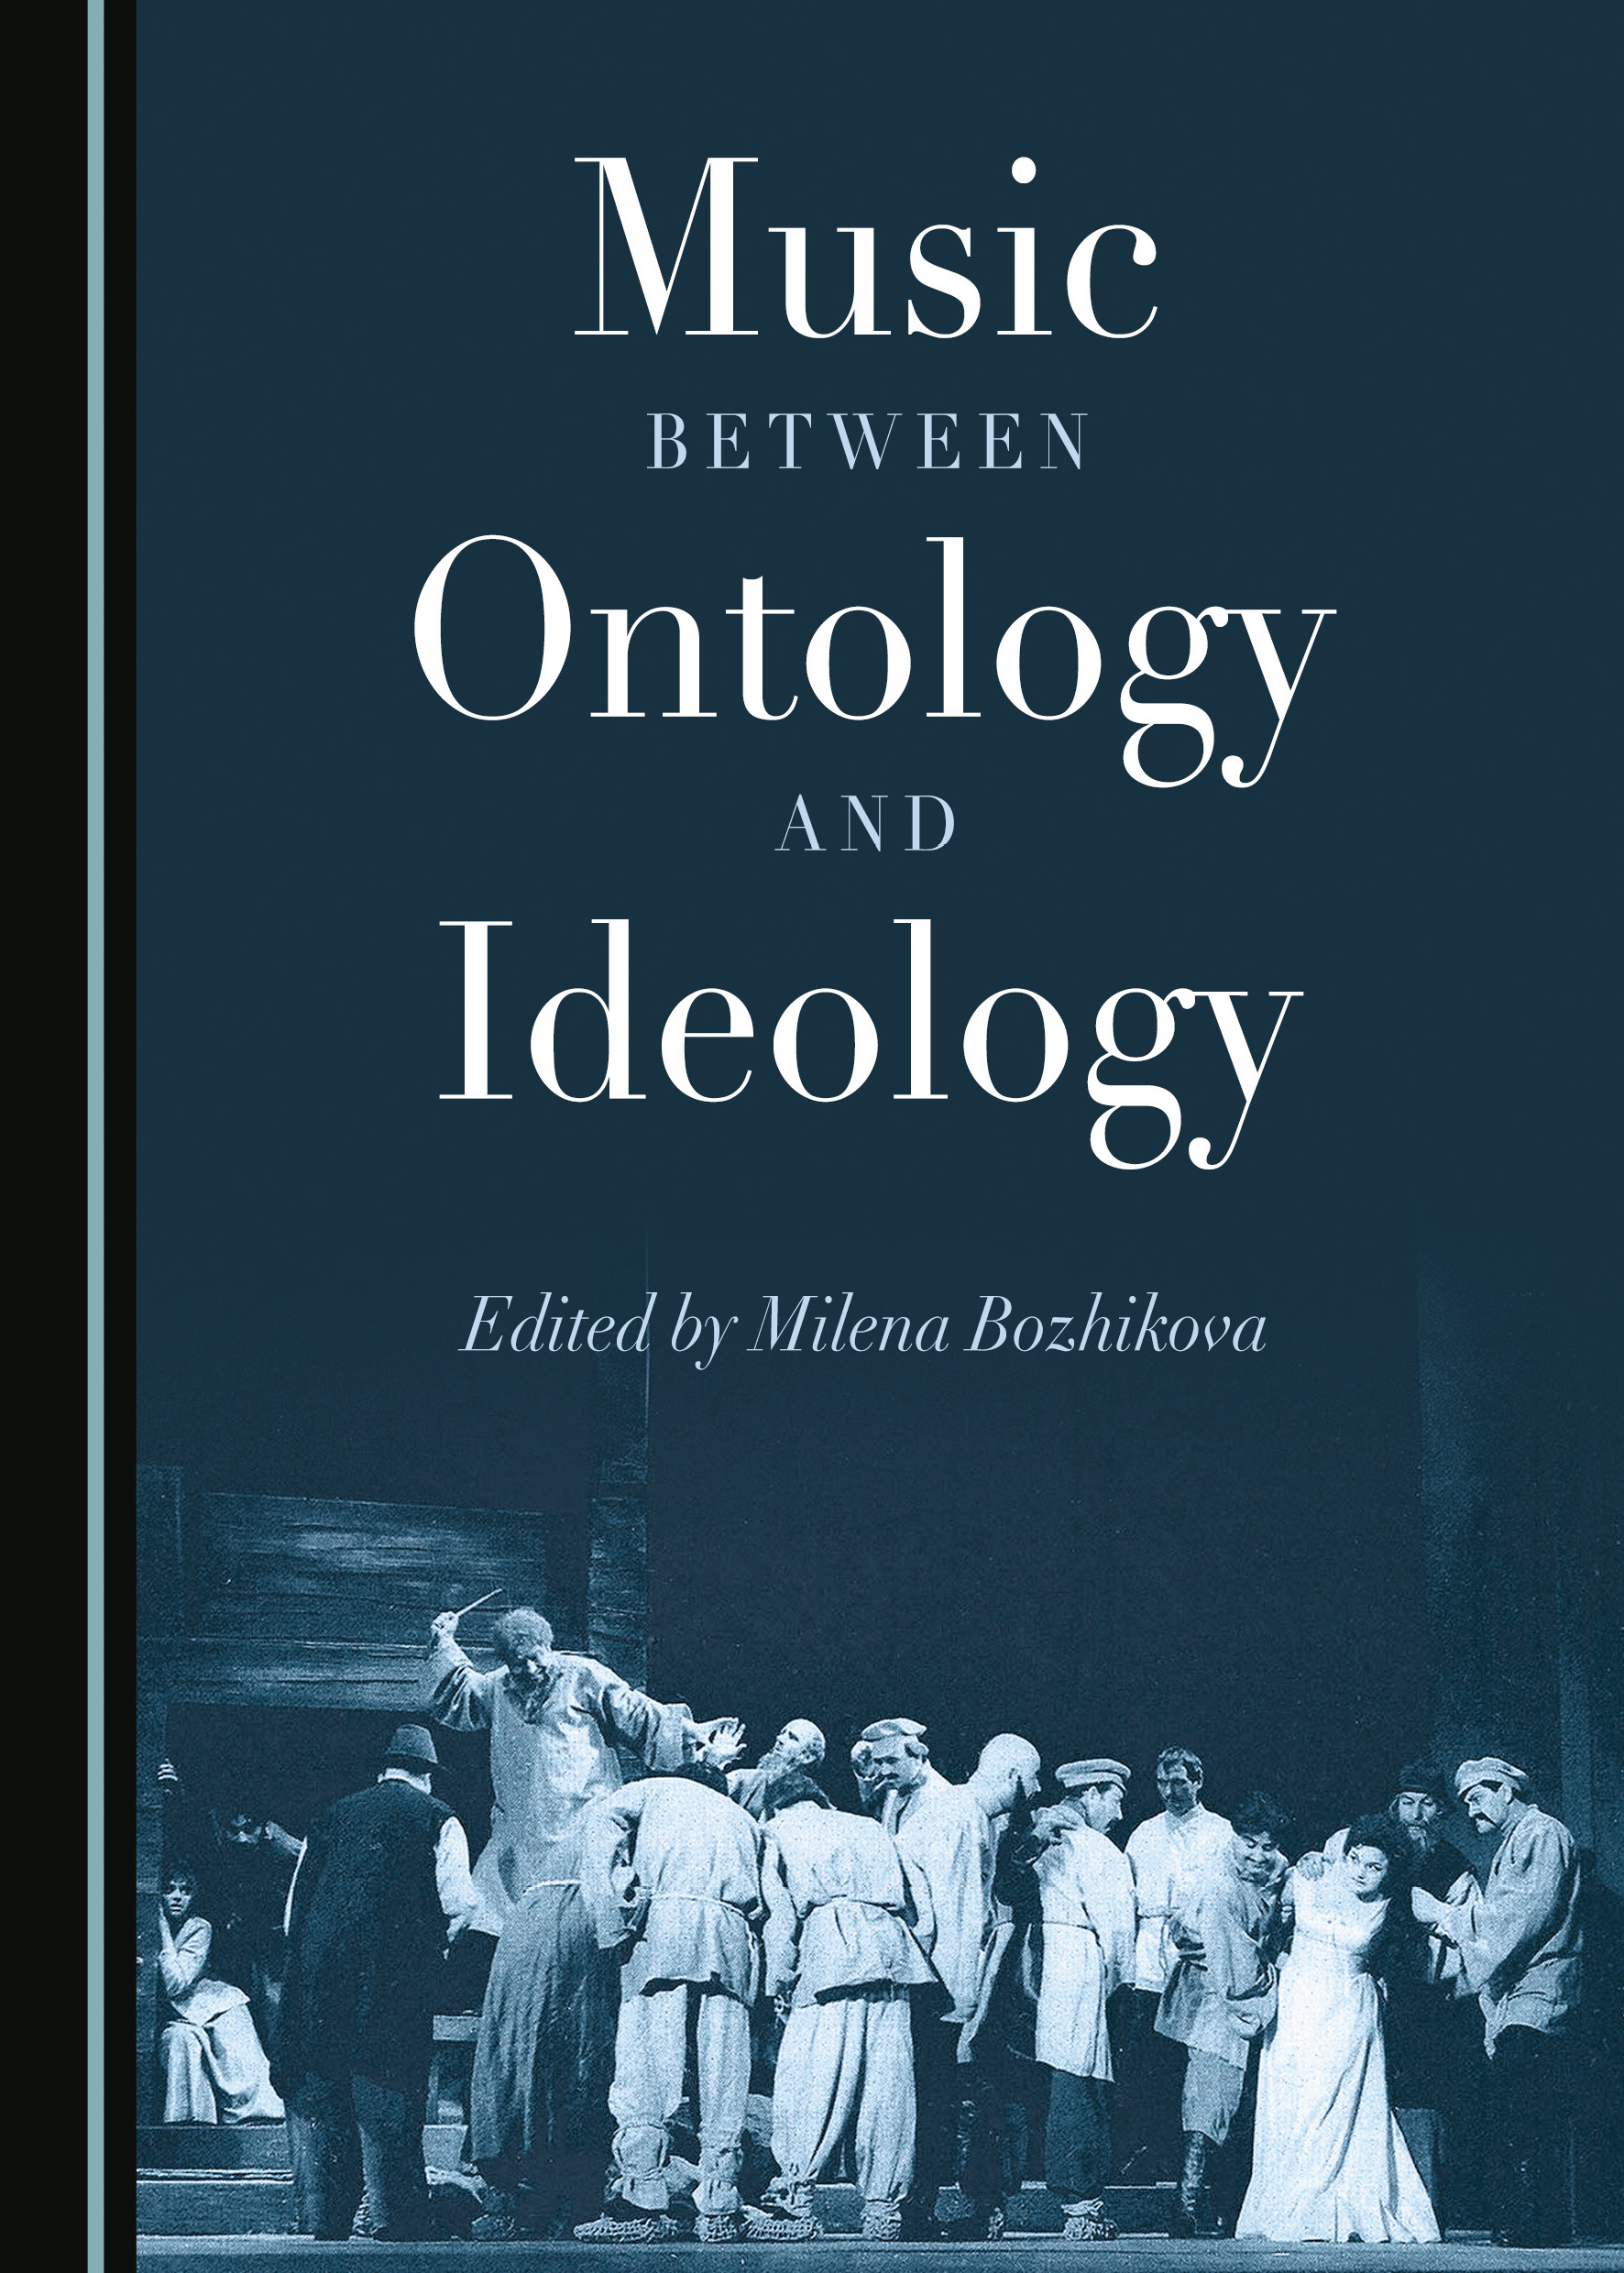 Music between Ontology and Ideology